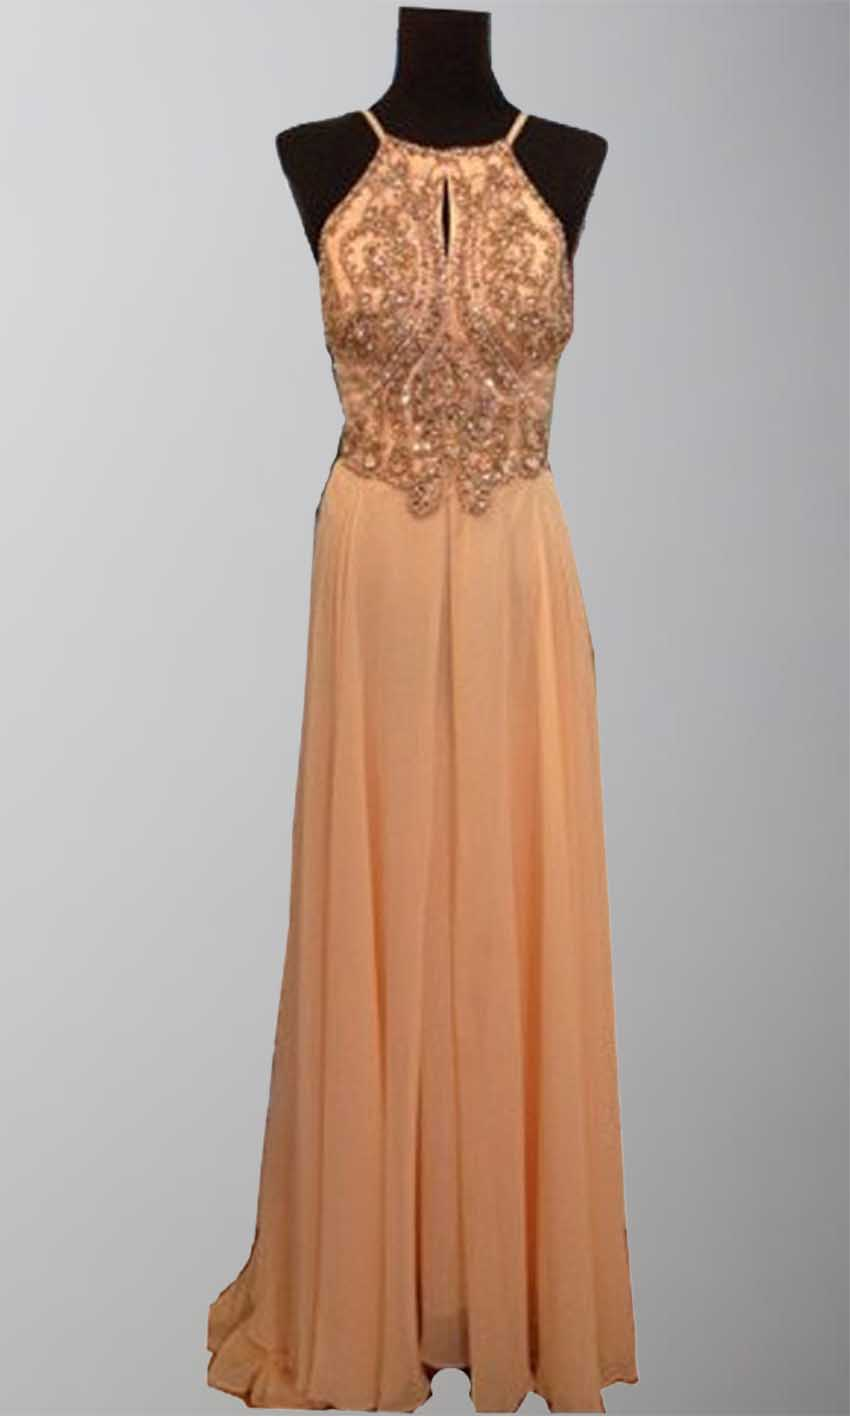 £116.00 : cheap prom dresses uk, bridesmaid dresses, 2014 prom & evening dresses, look for cheap elegant prom dresses 2014, cocktail gowns, or dresses for special occasions? kissprom.co.uk offers various bridesmaid dresses, evening dress, free shipping to uk etc.